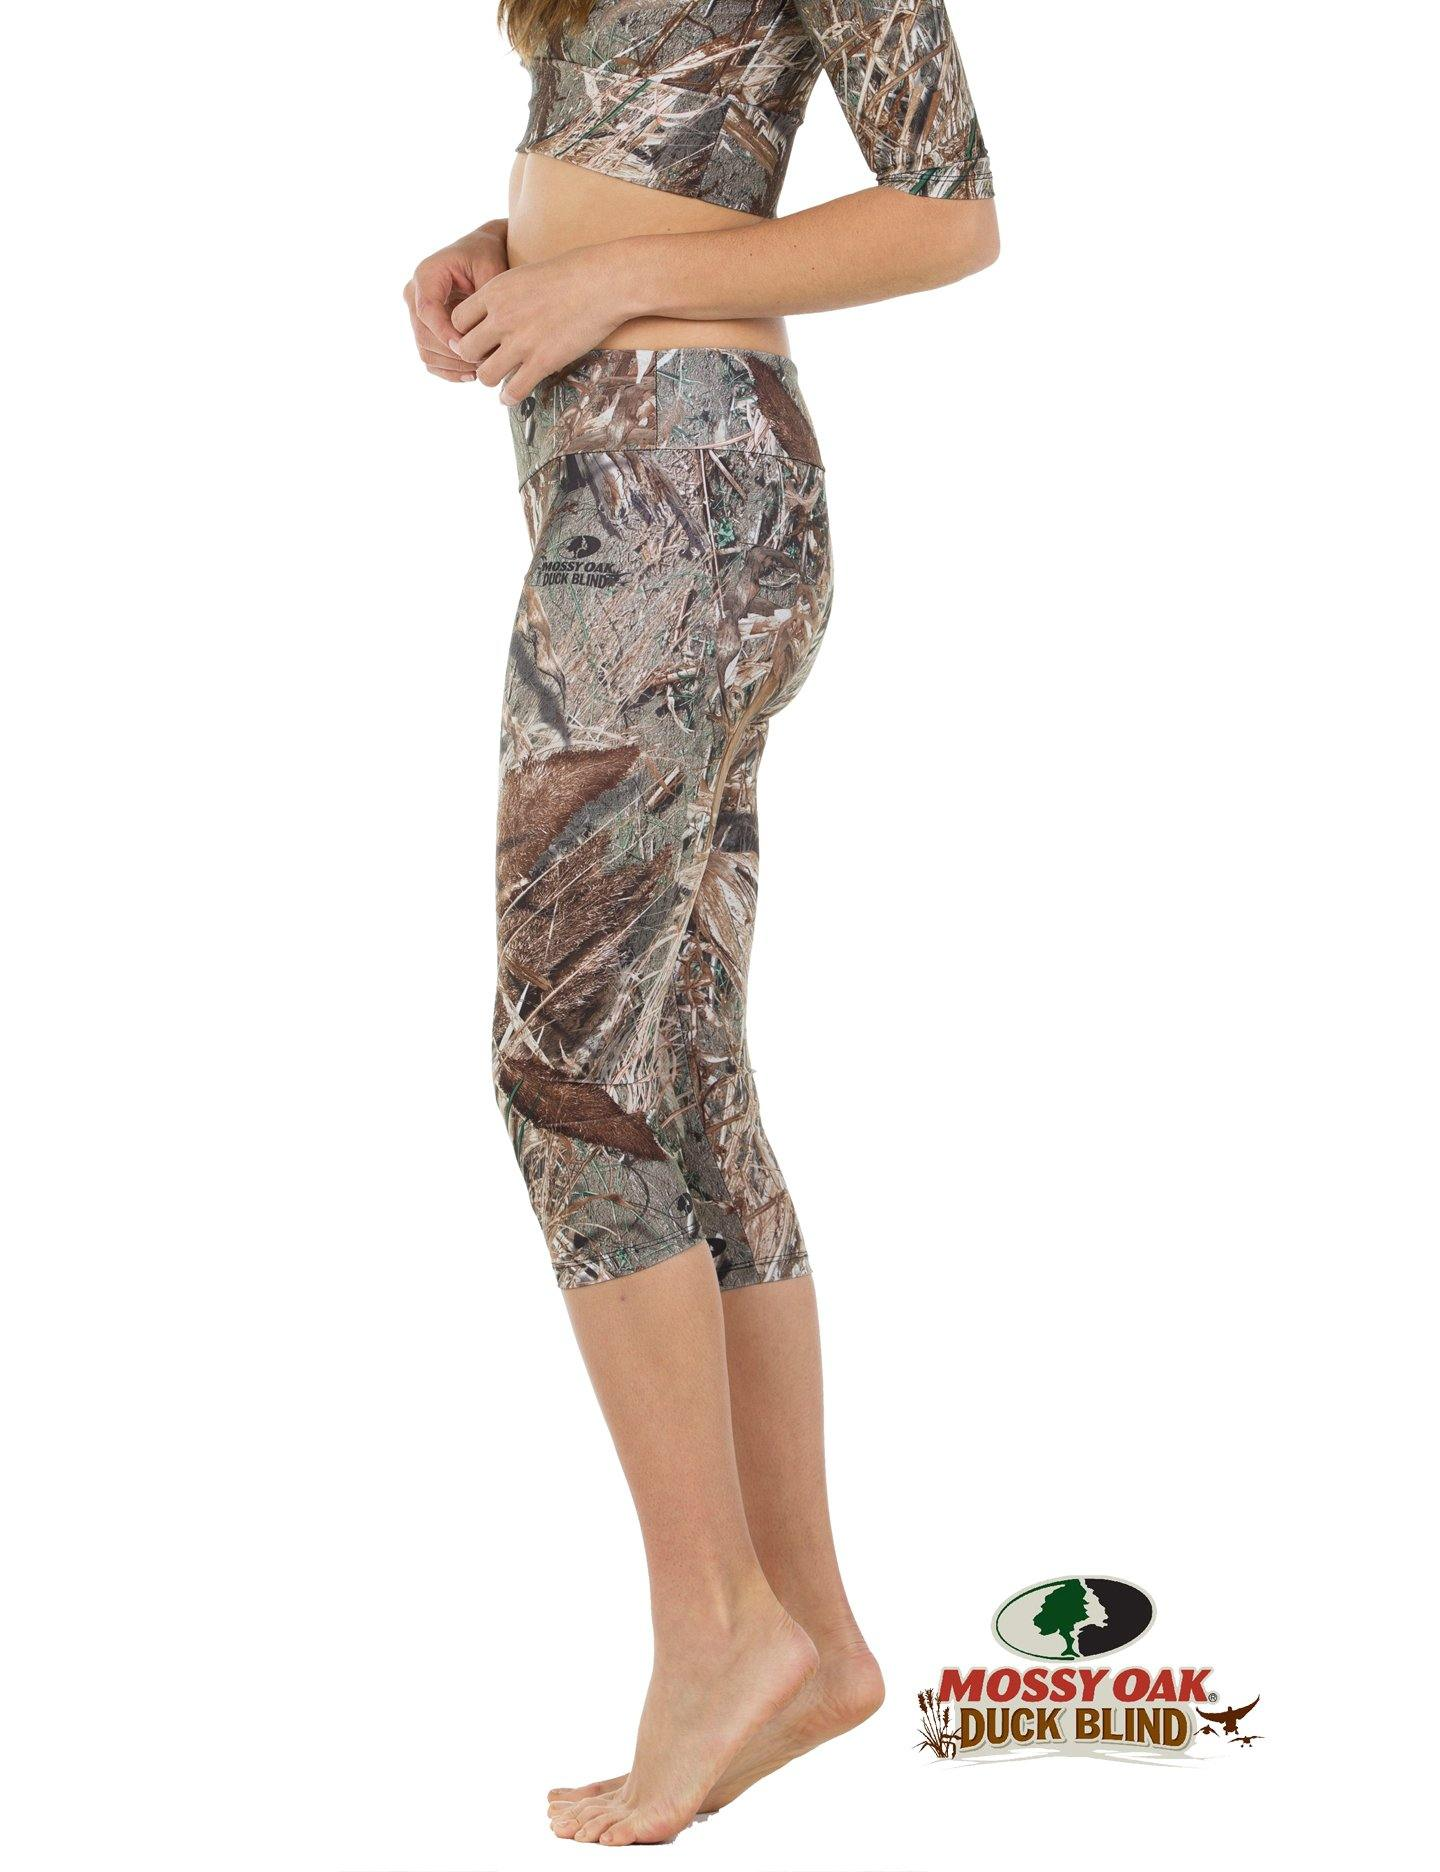 Apsara Leggings Low Waist Capri, Mossy Oak Duck Blind